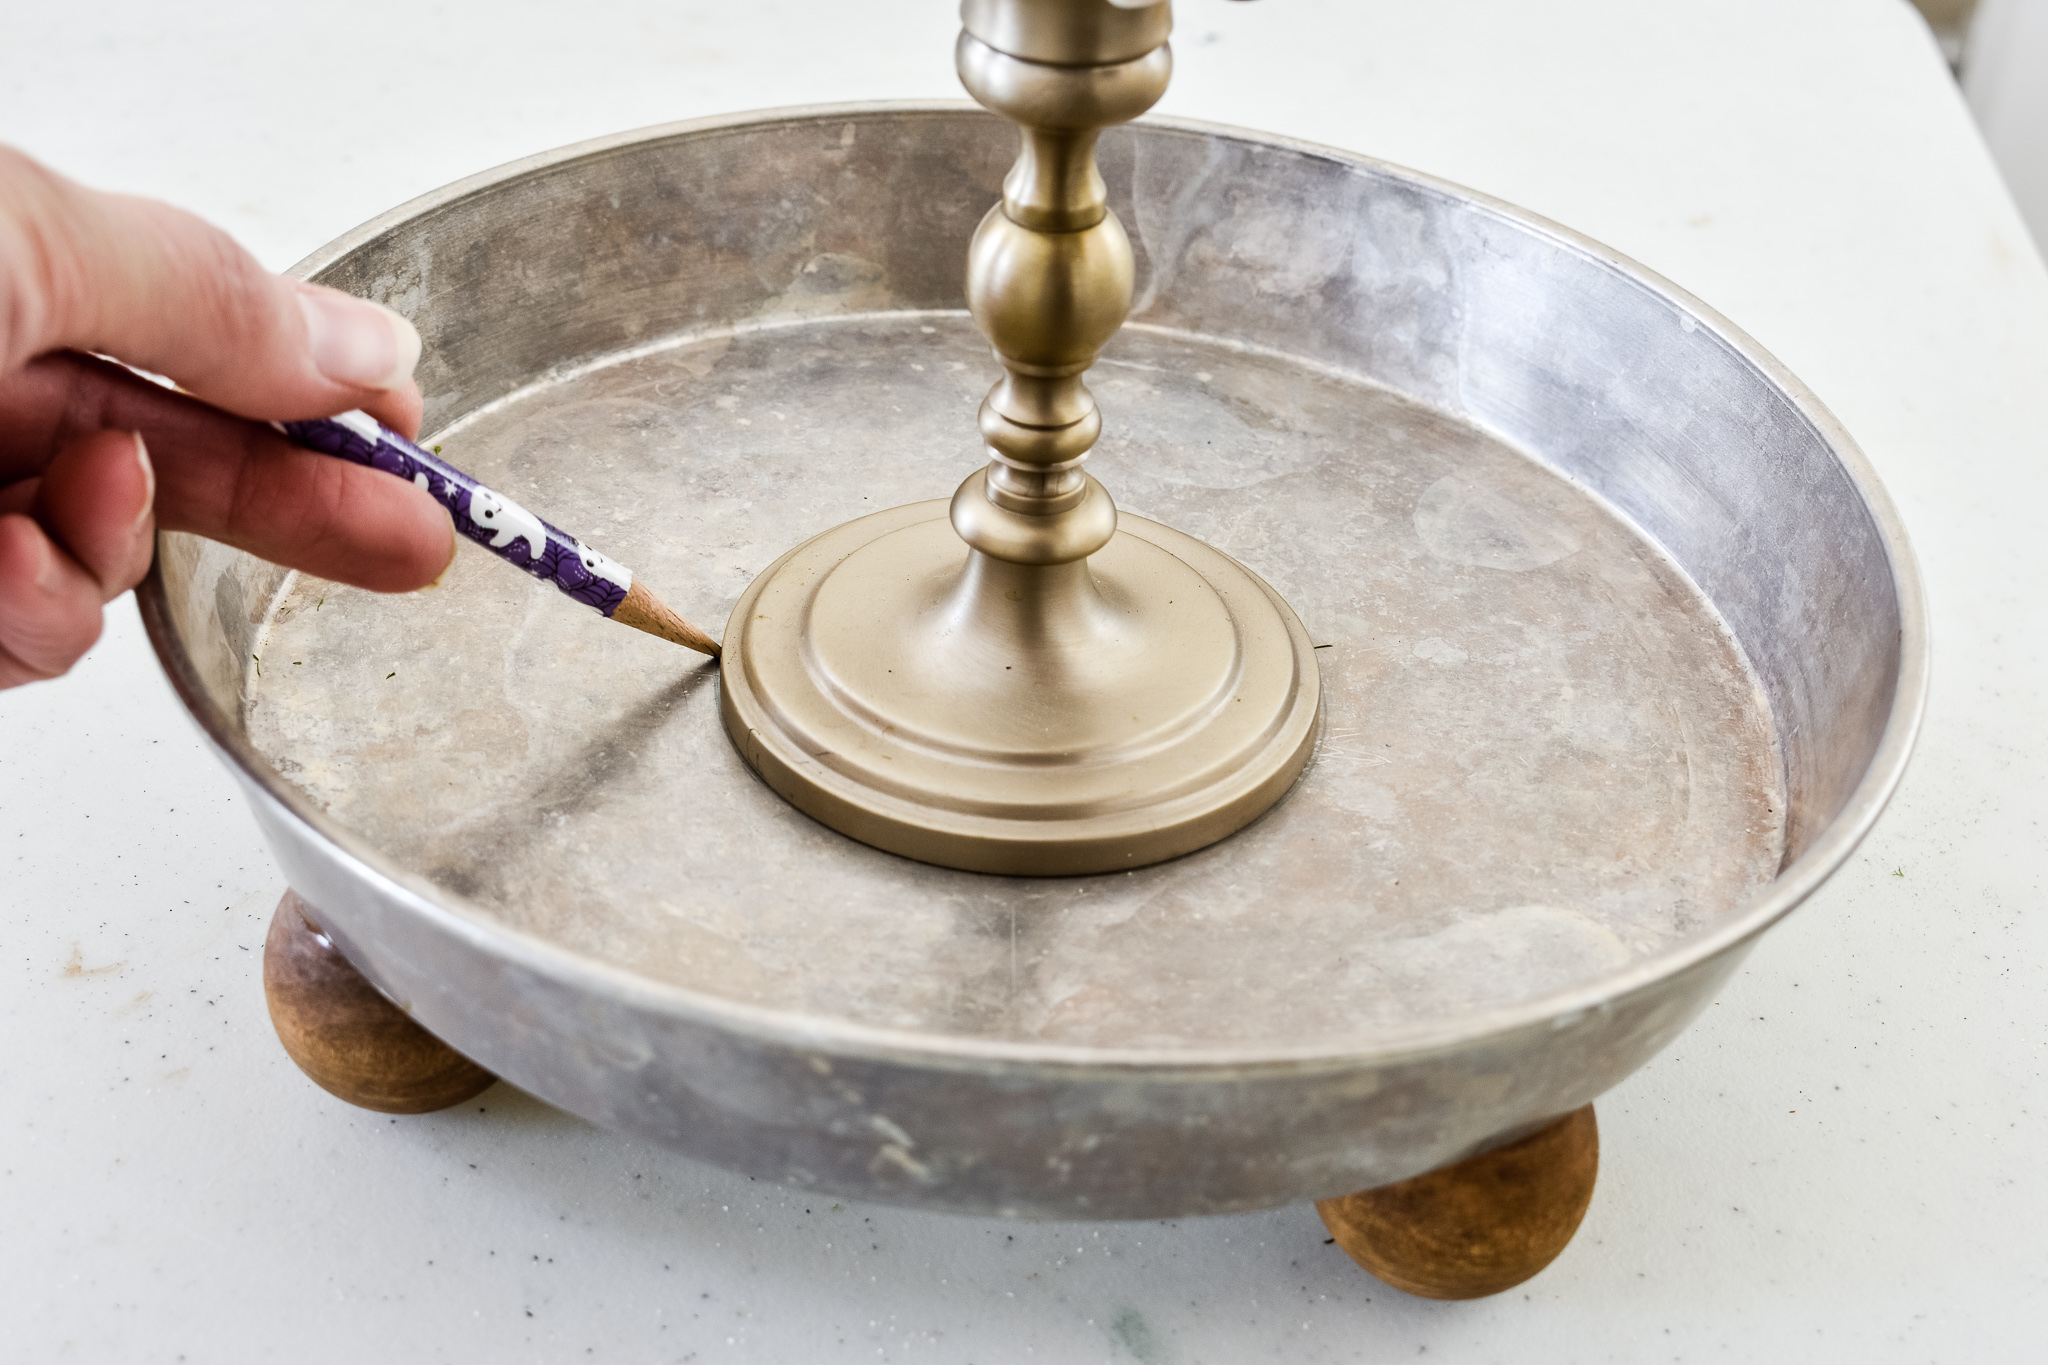 tracing a candlestick with a pencil around  the middle of a cake pan